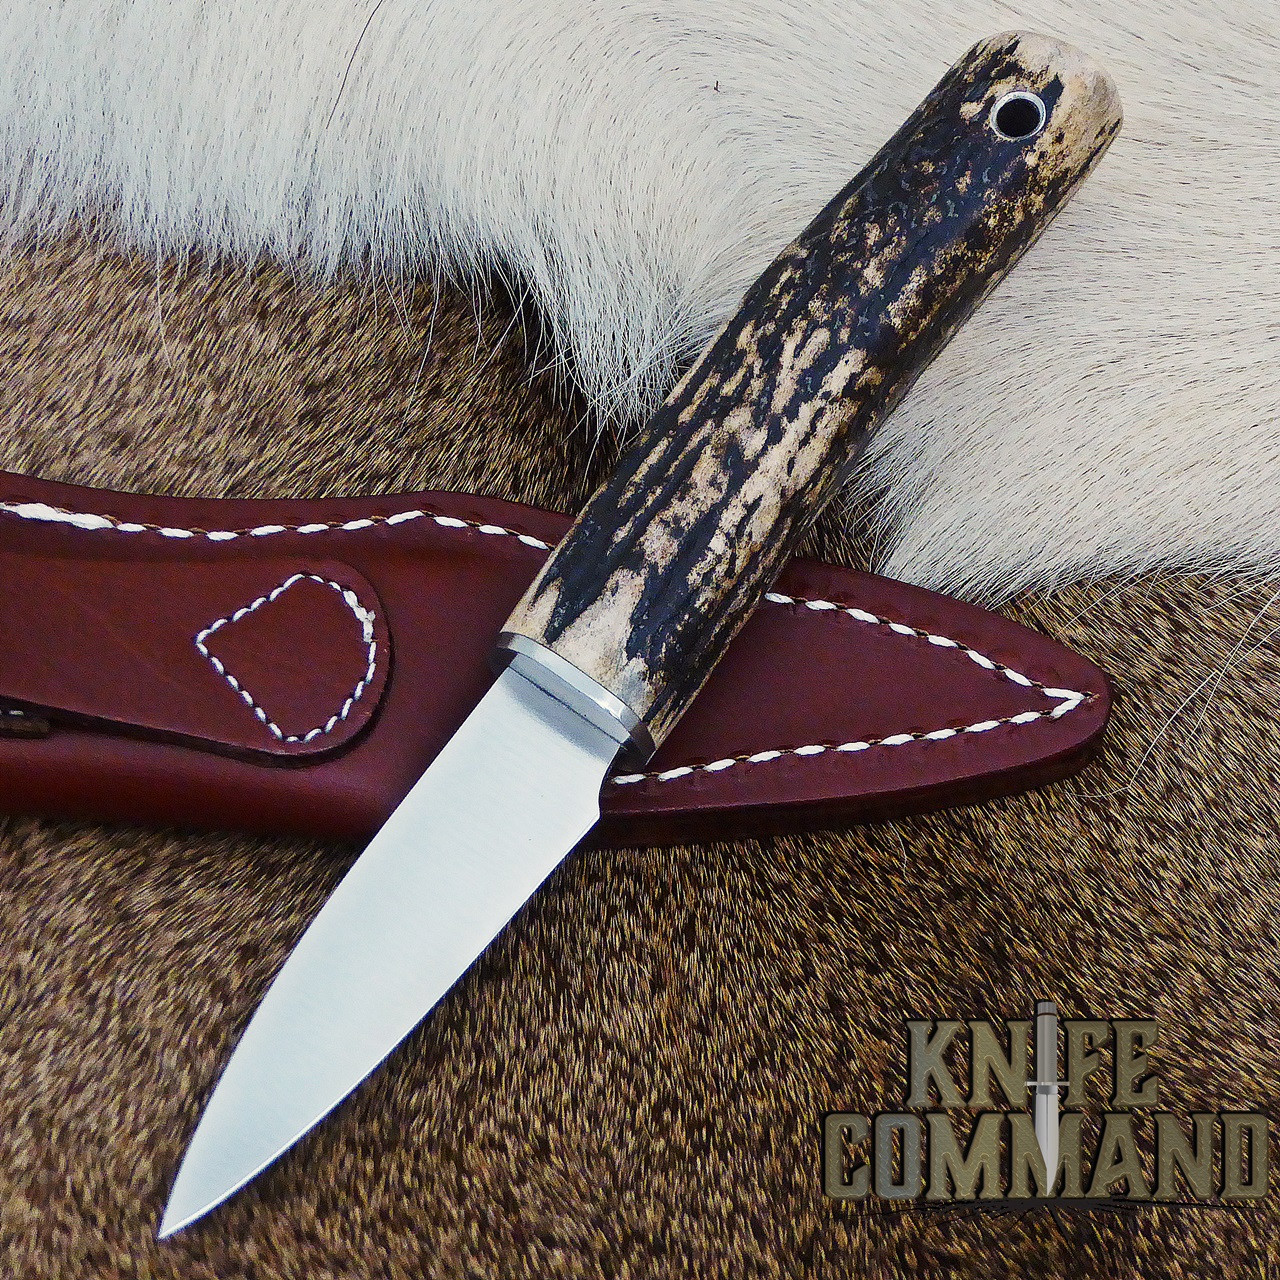 Great all around knife.